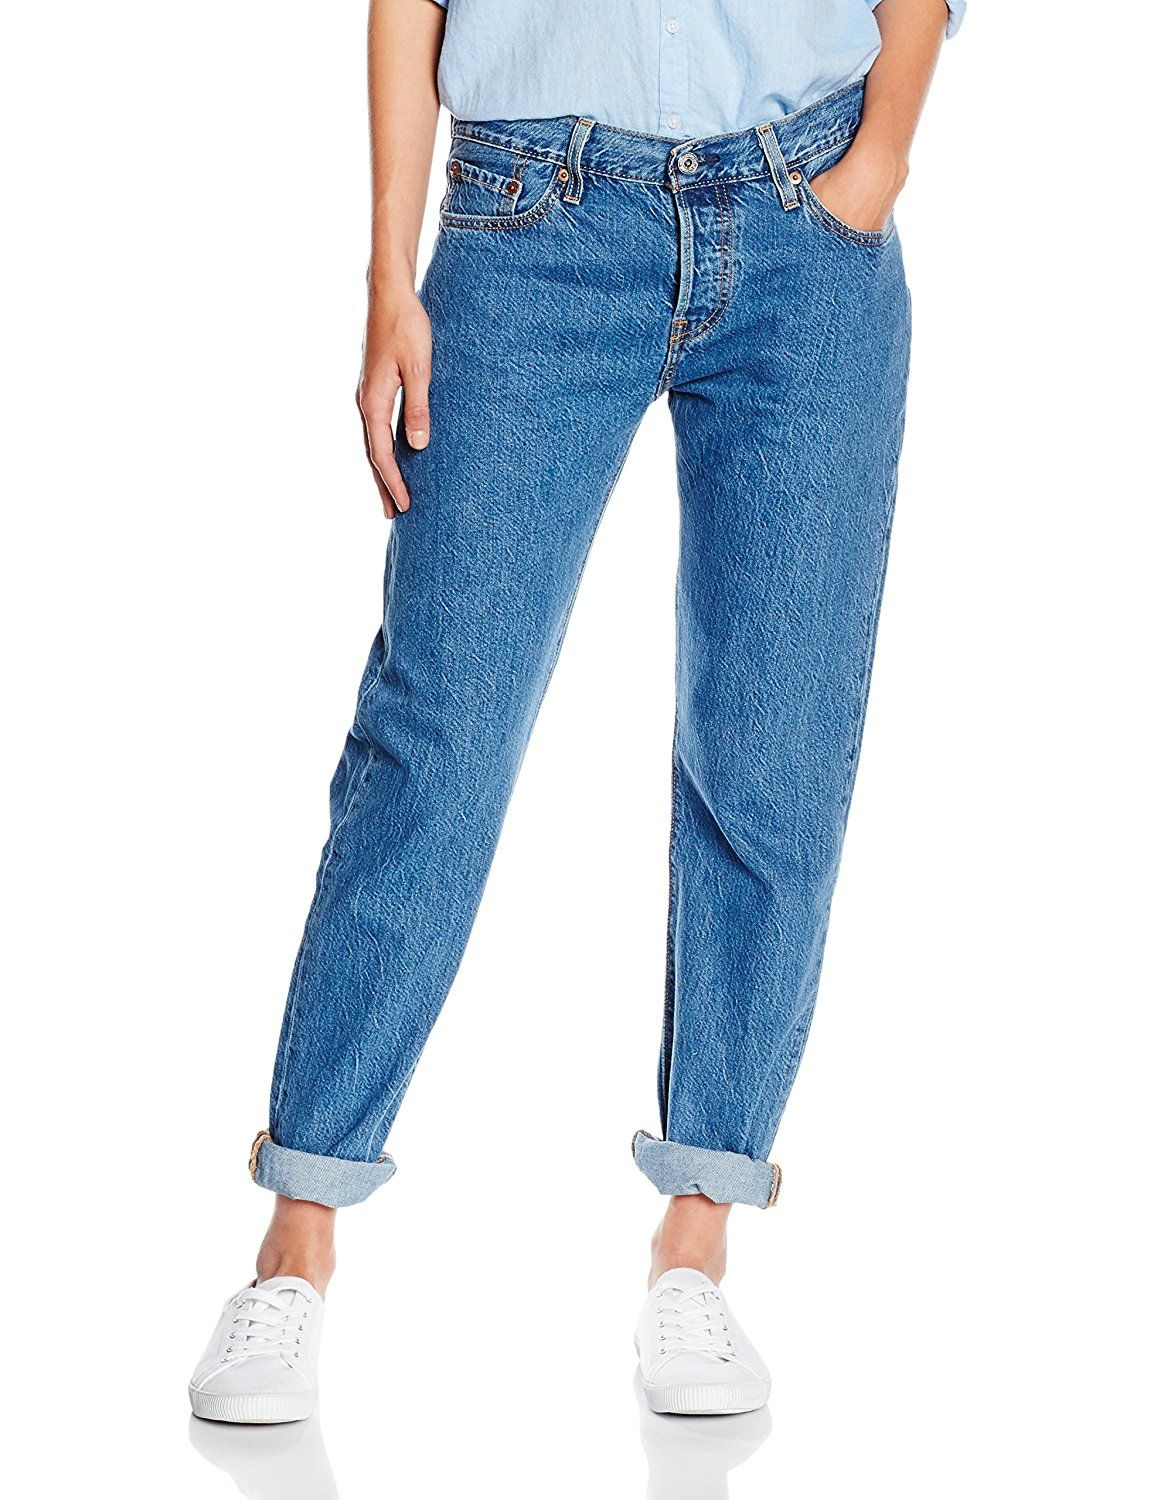 Levis 501 Femme Coupe Droite Levi S Damen Jeanshose 501 Ct Jeans For Women Blau Surf Shade 13